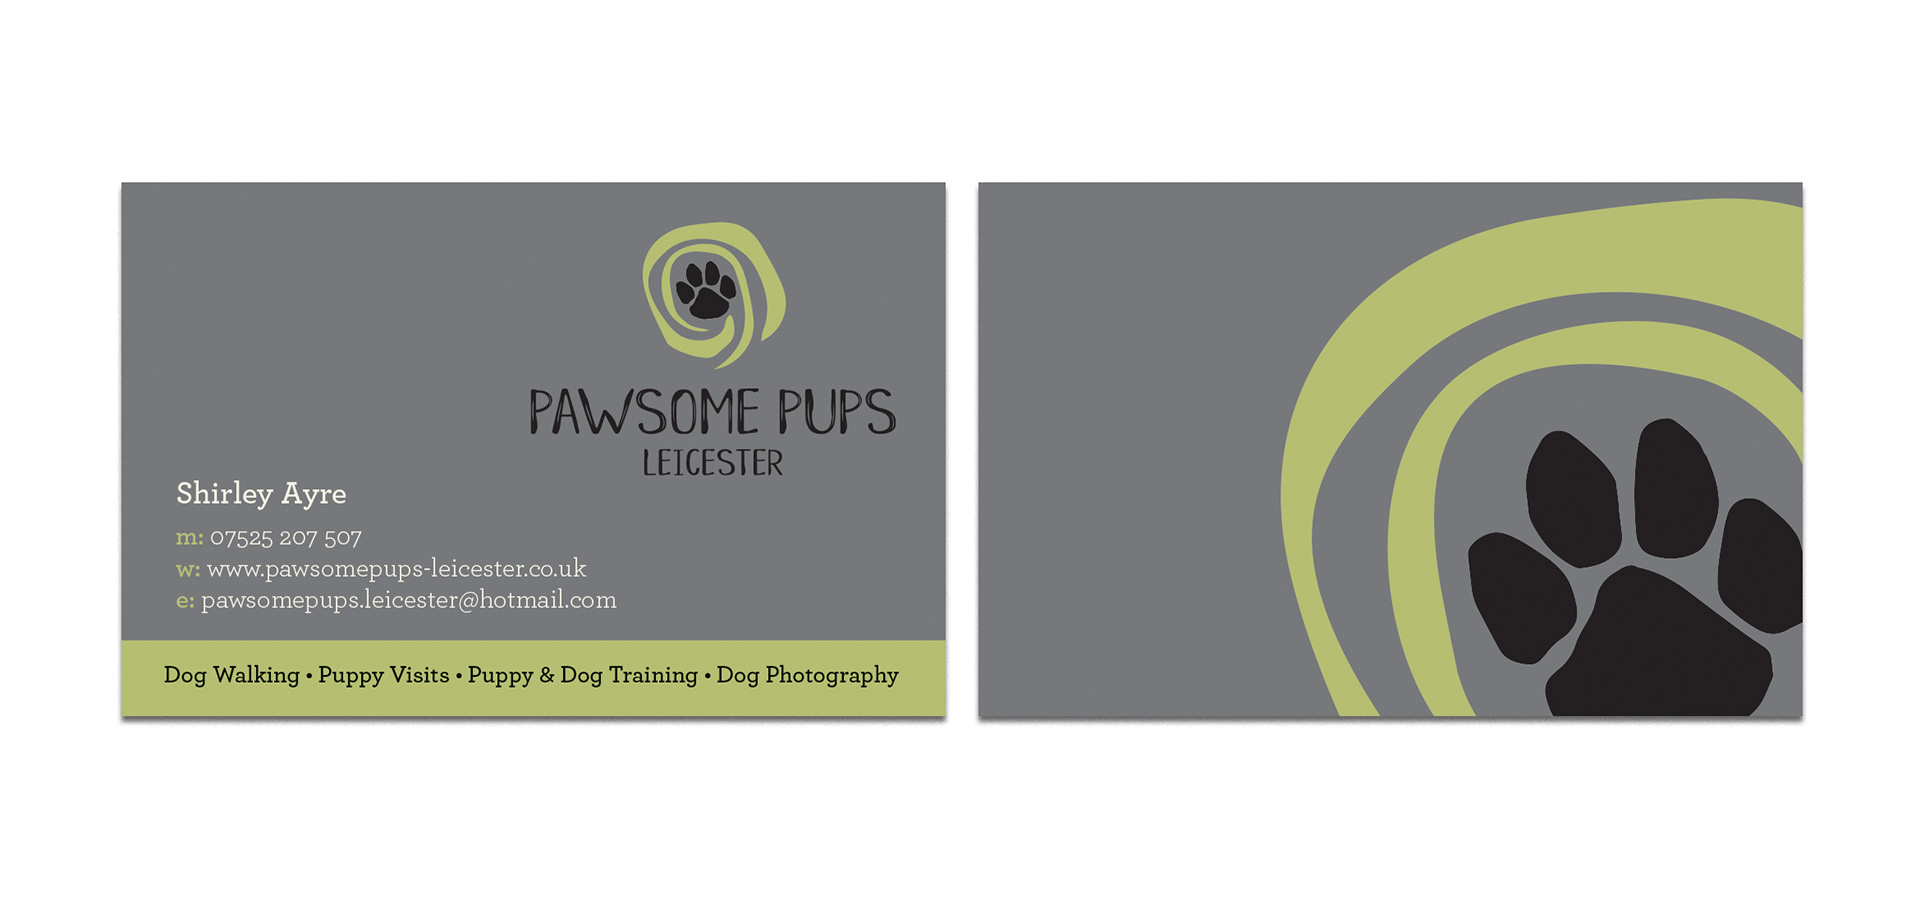 Luxury Dog Trainer Business Cards Mold - Business Card Ideas ...